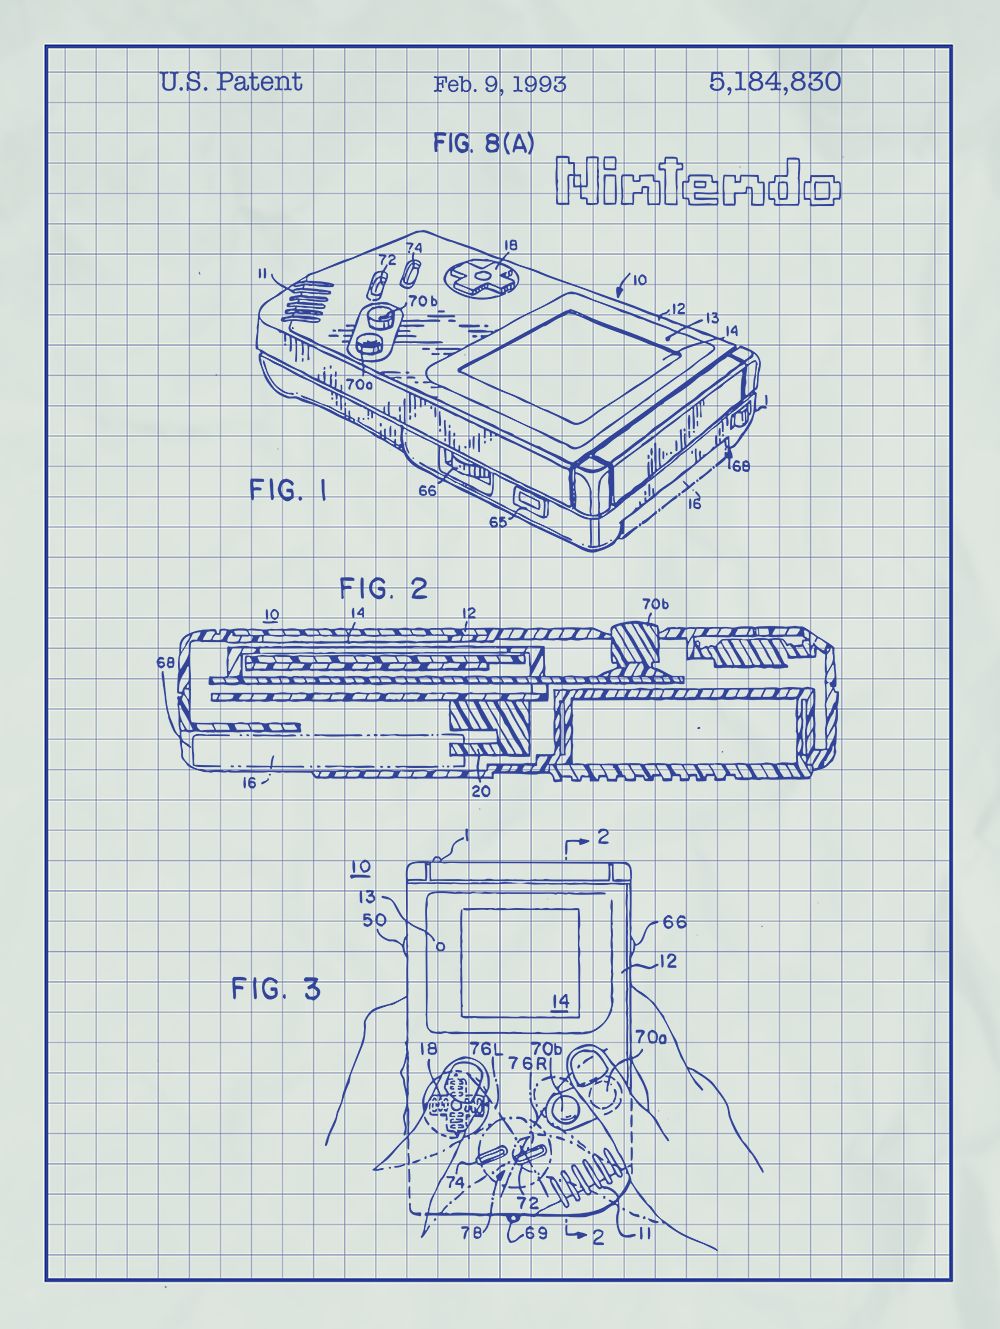 Nintendo game boy screen print handheld video game gameboy patent nintendo gameboy patent print on white graph paper background malvernweather Choice Image